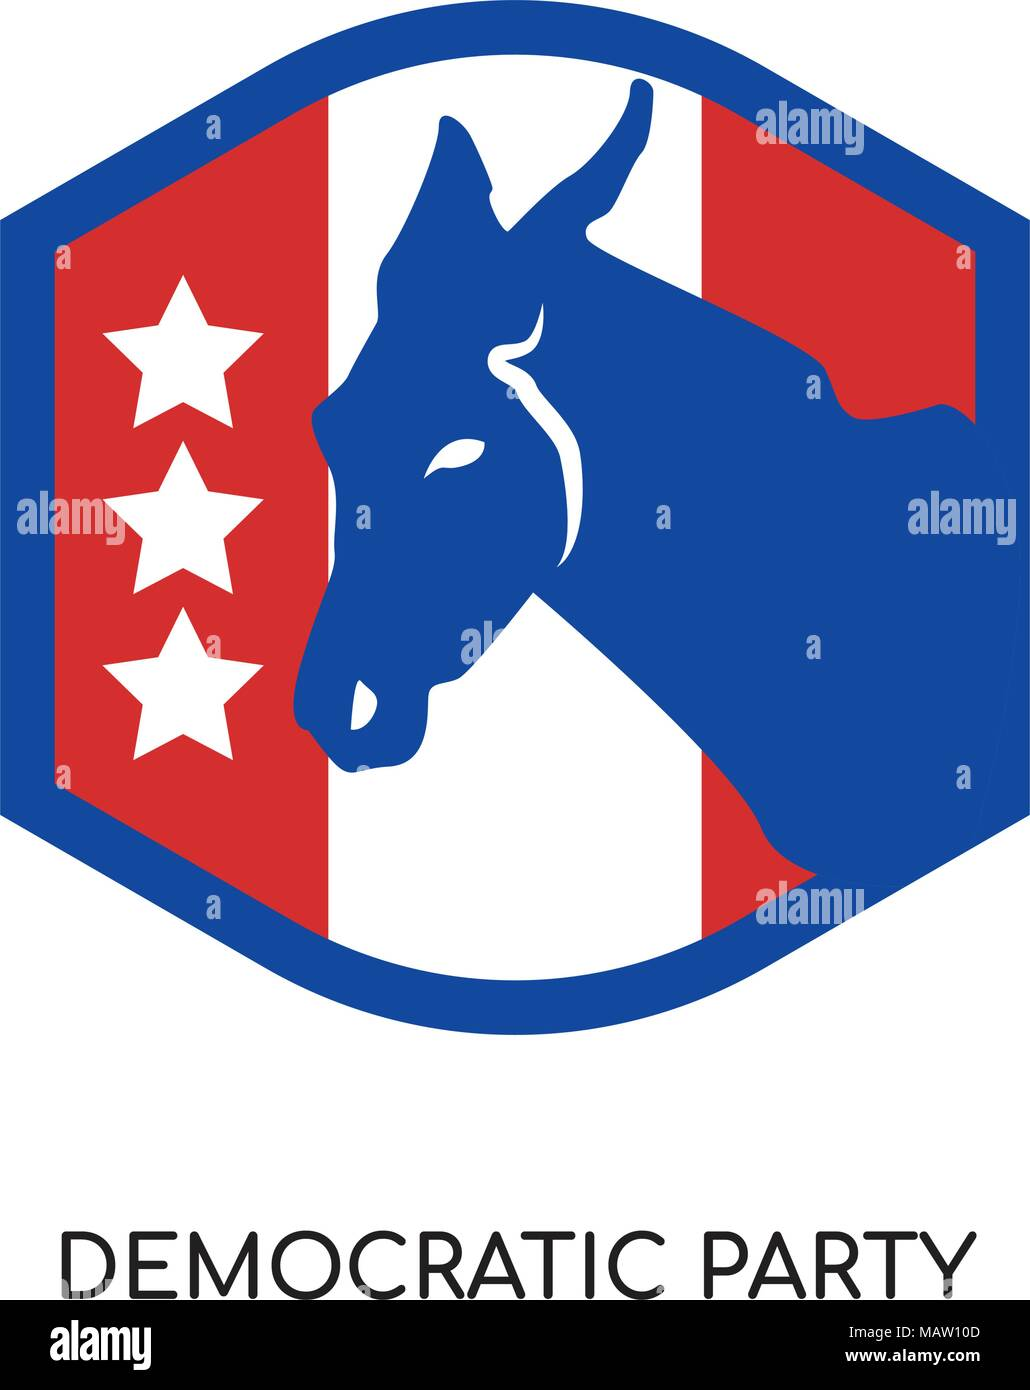 democratic party logo isolated on white background for your web, mobile and app design - Stock Image